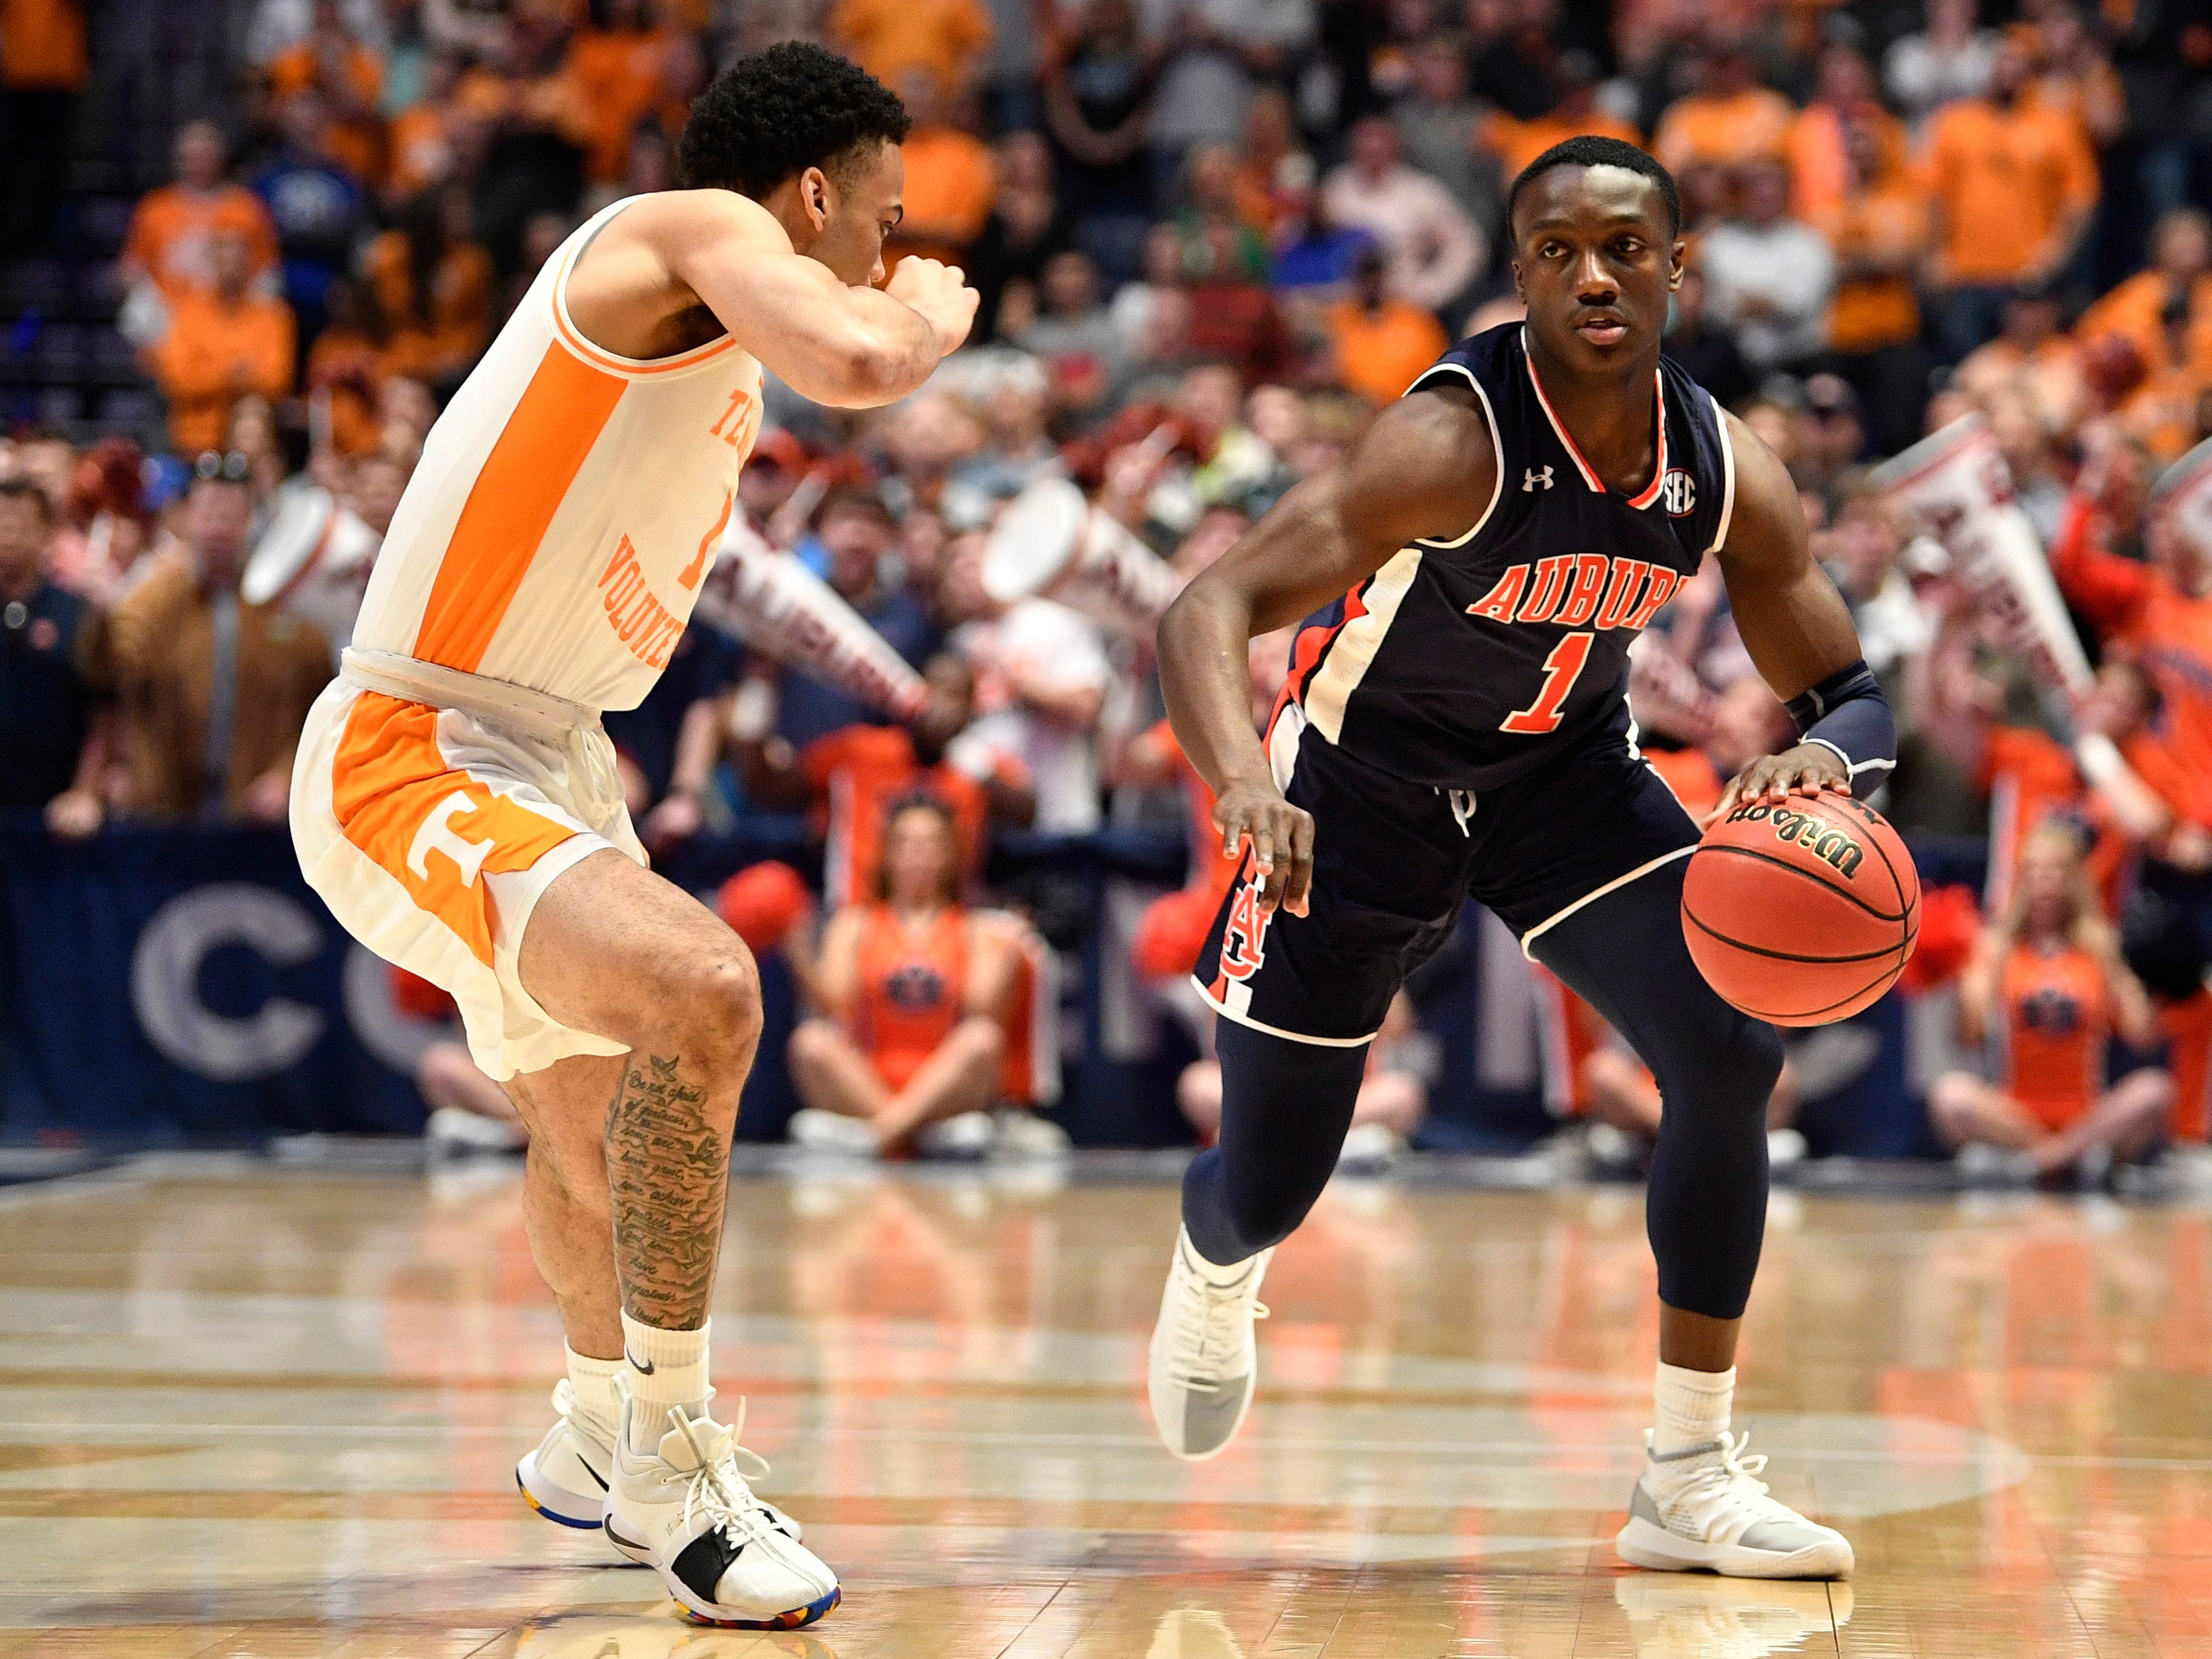 Auburn guard Jared Harper (1) moves the ball defended by Tennessee guard Lamonte Turner (1) during the first half of the SEC Men's Basketball Tournament championship game at Bridgestone Arena in Nashville, Tenn., Sunday, March 17, 2019.